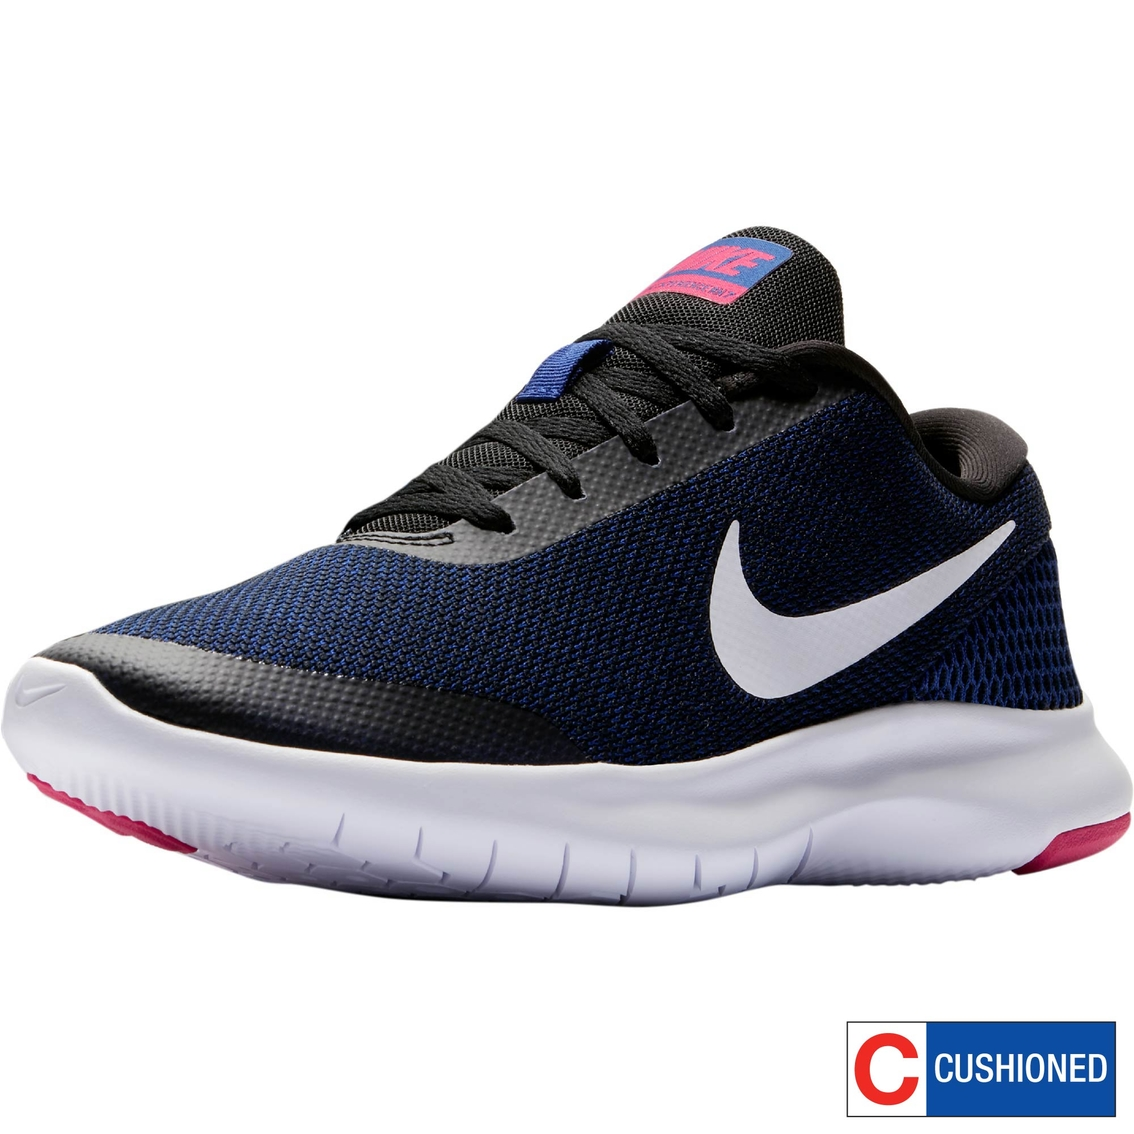 184f3b0eef1dce Nike Women s Flex Experience Rn 7 Running Shoes